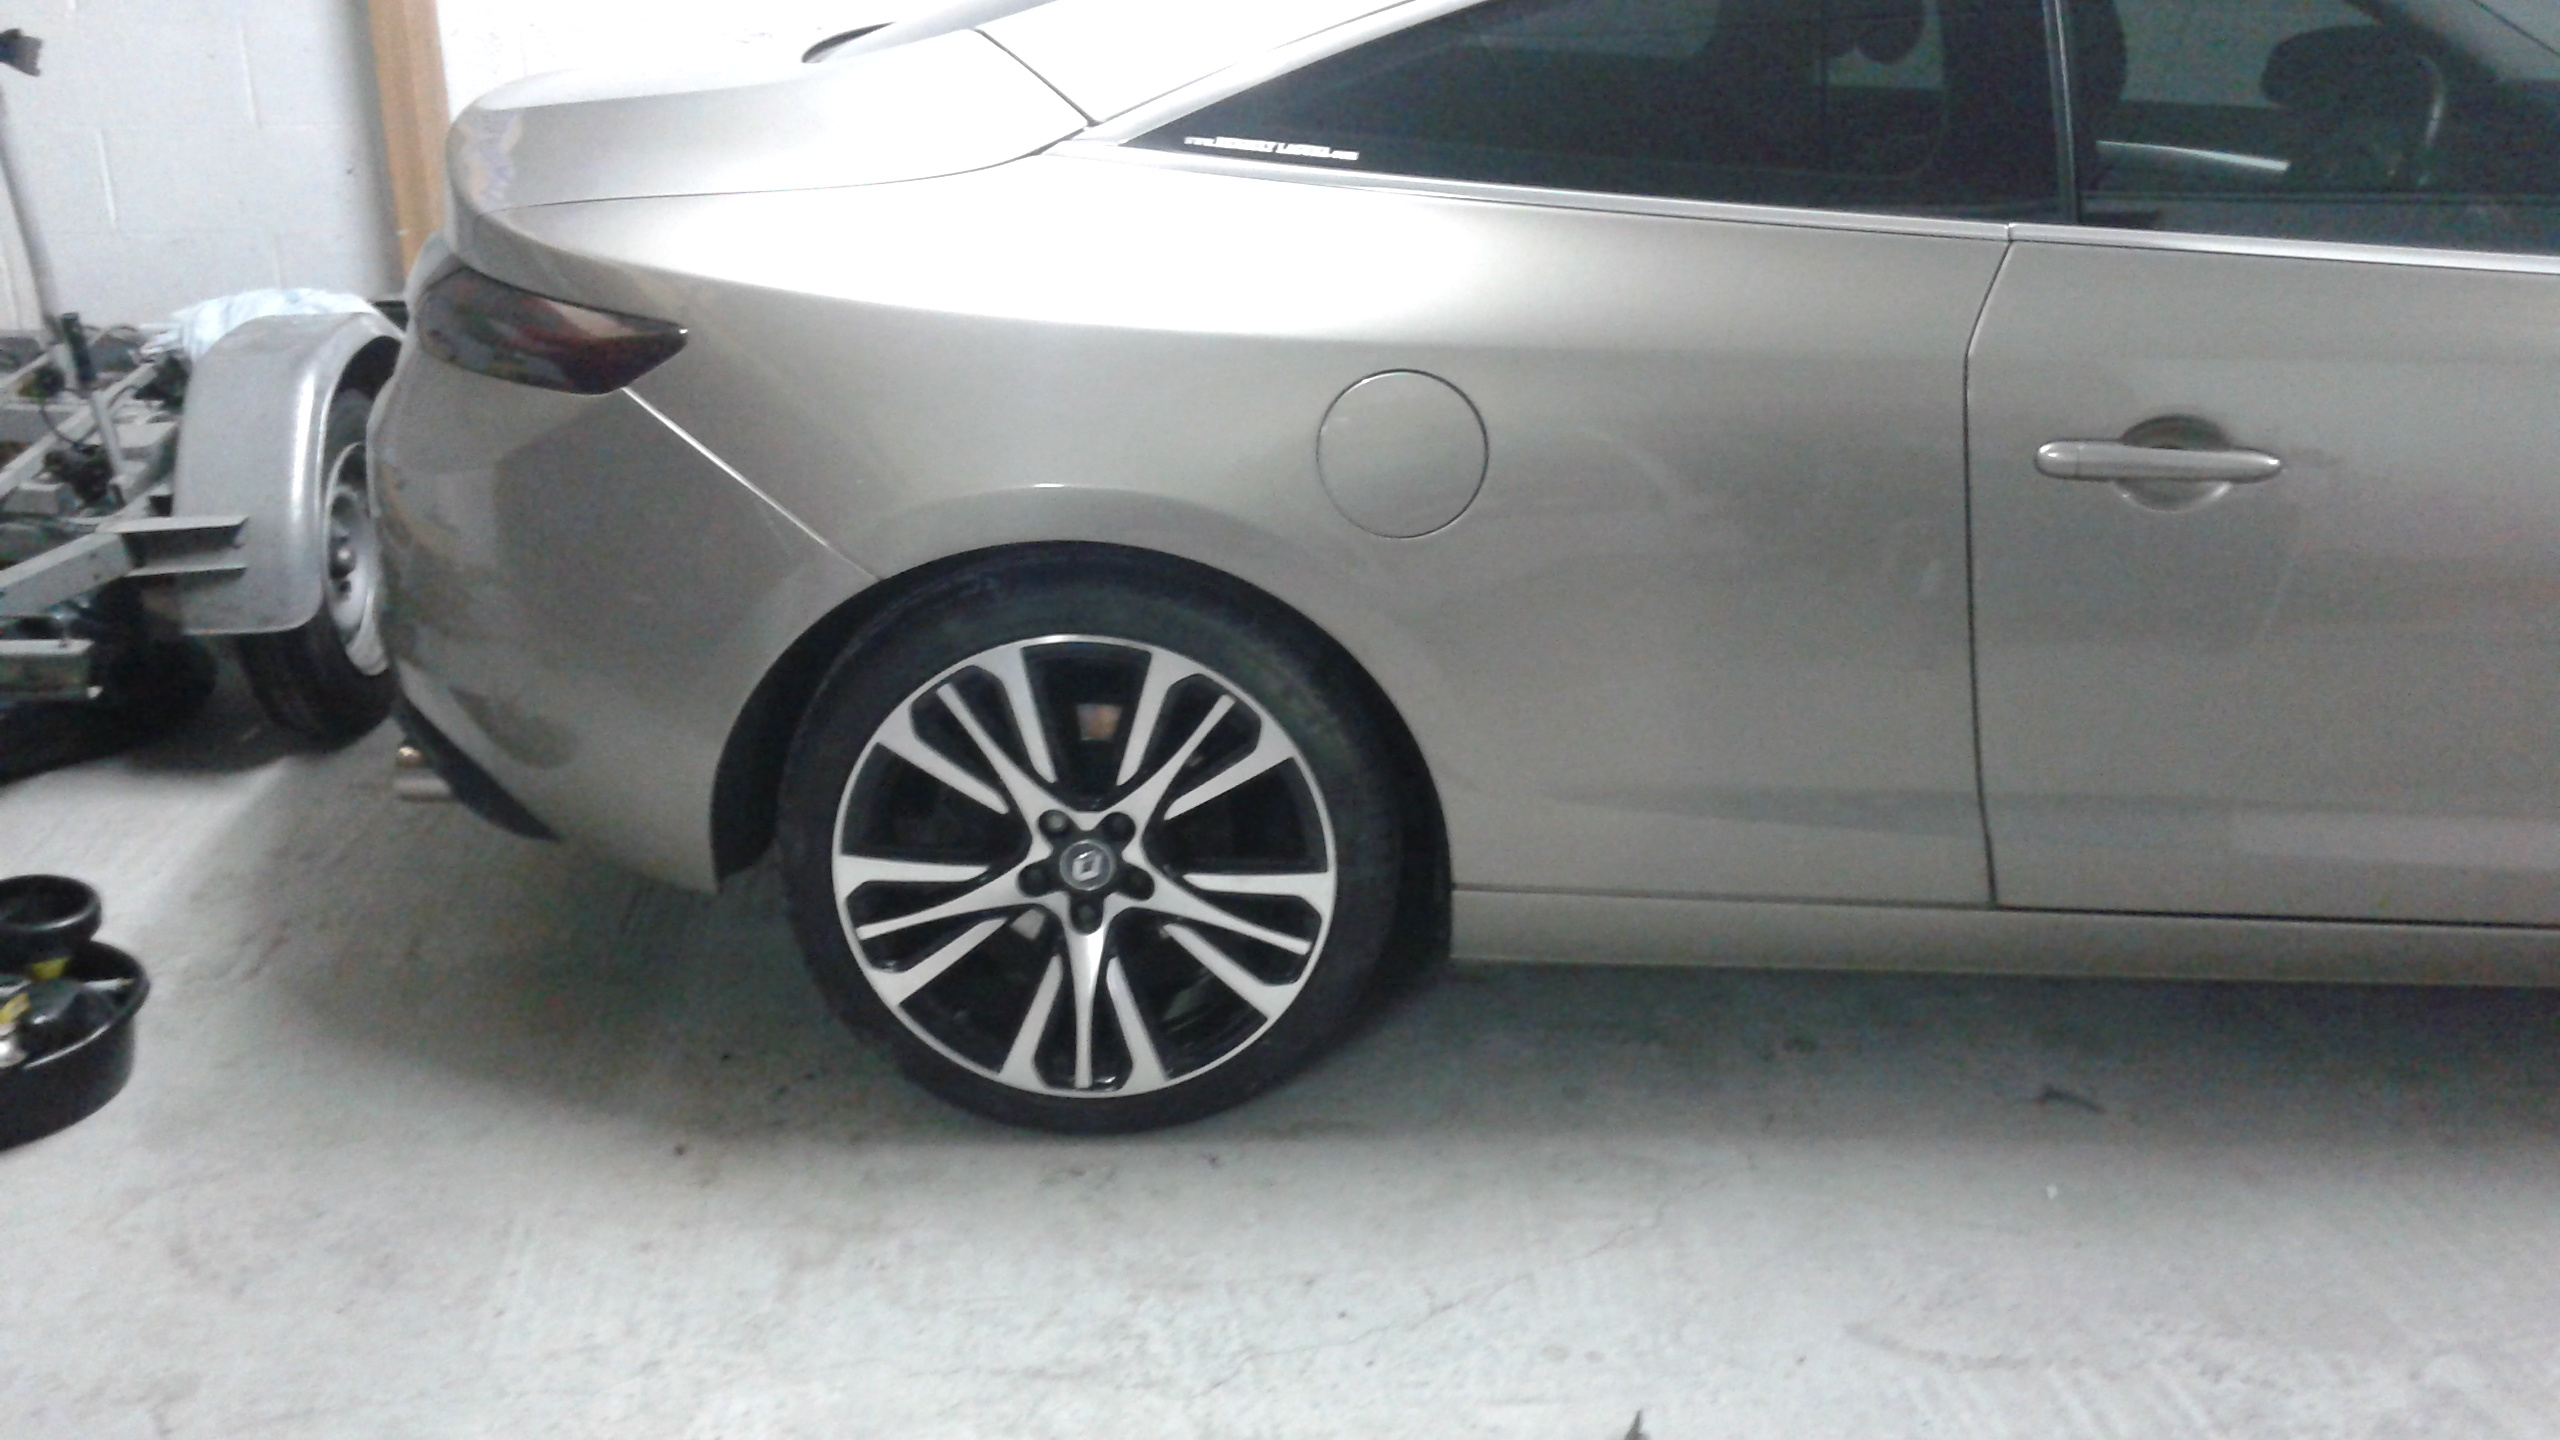 [nathanjo] Laguna III coupé initiale 3.0 dCi 235 - Page 5 20160531210602